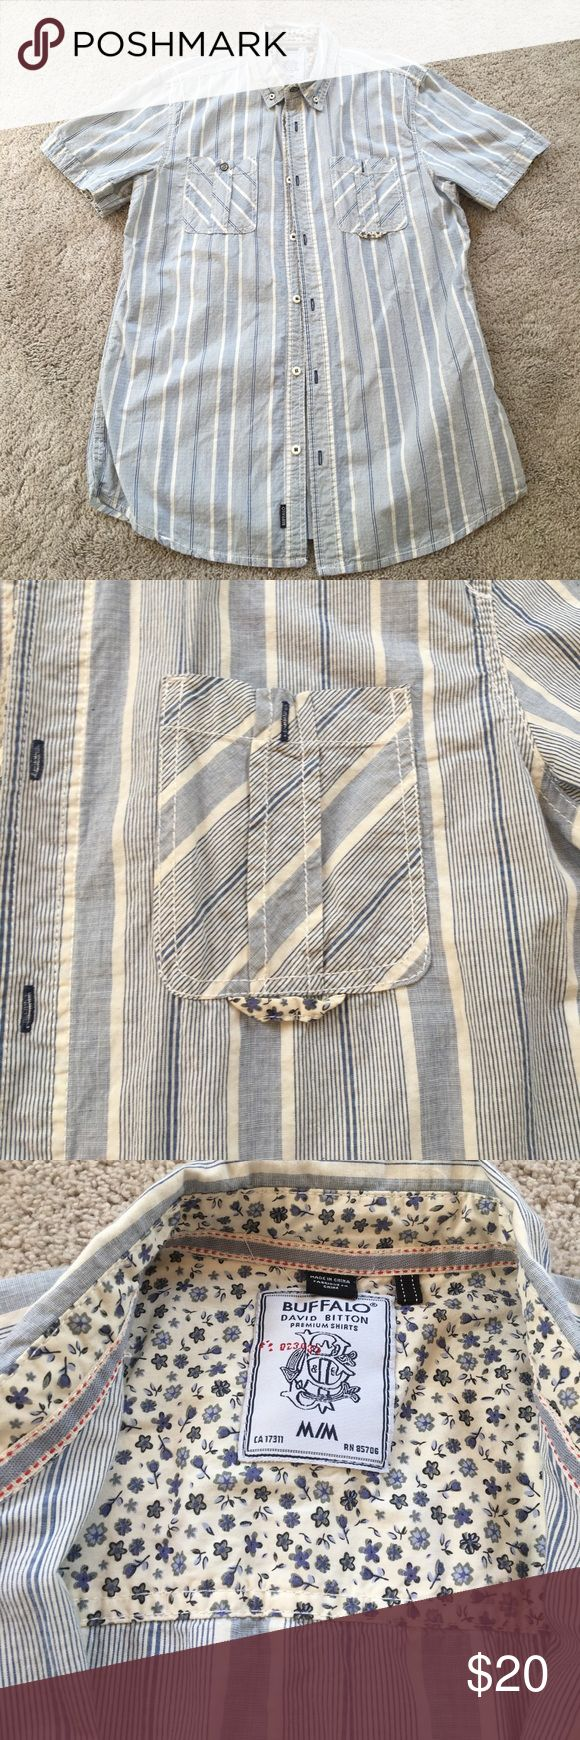 Buffalo David Bitton short sleeve shirt M Buffalo David Bitton short sleeve button up casual shirt Medium. Blue and white vertical striping with blue and white floral details. Worn a handful of times in excellent condition. Buffalo David Bitton Shirts Casual Button Down Shirts